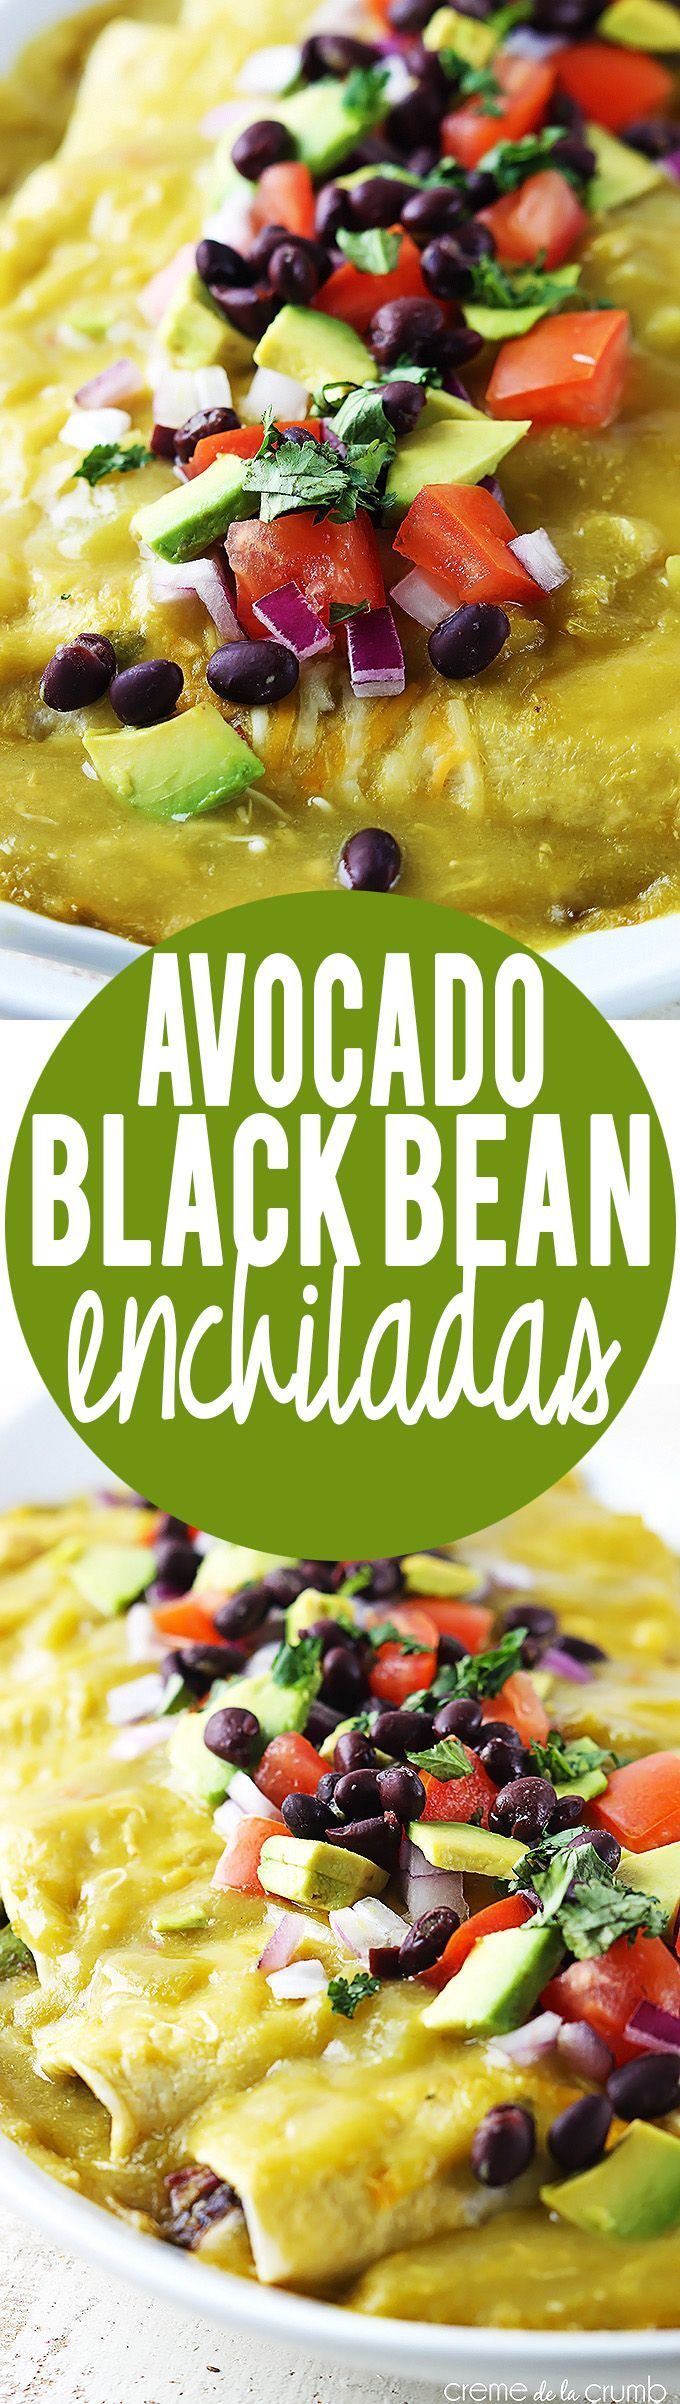 Black Bean Enchiladas   Creme de la Crumb instead of canned beans I made beans in the crockpot...